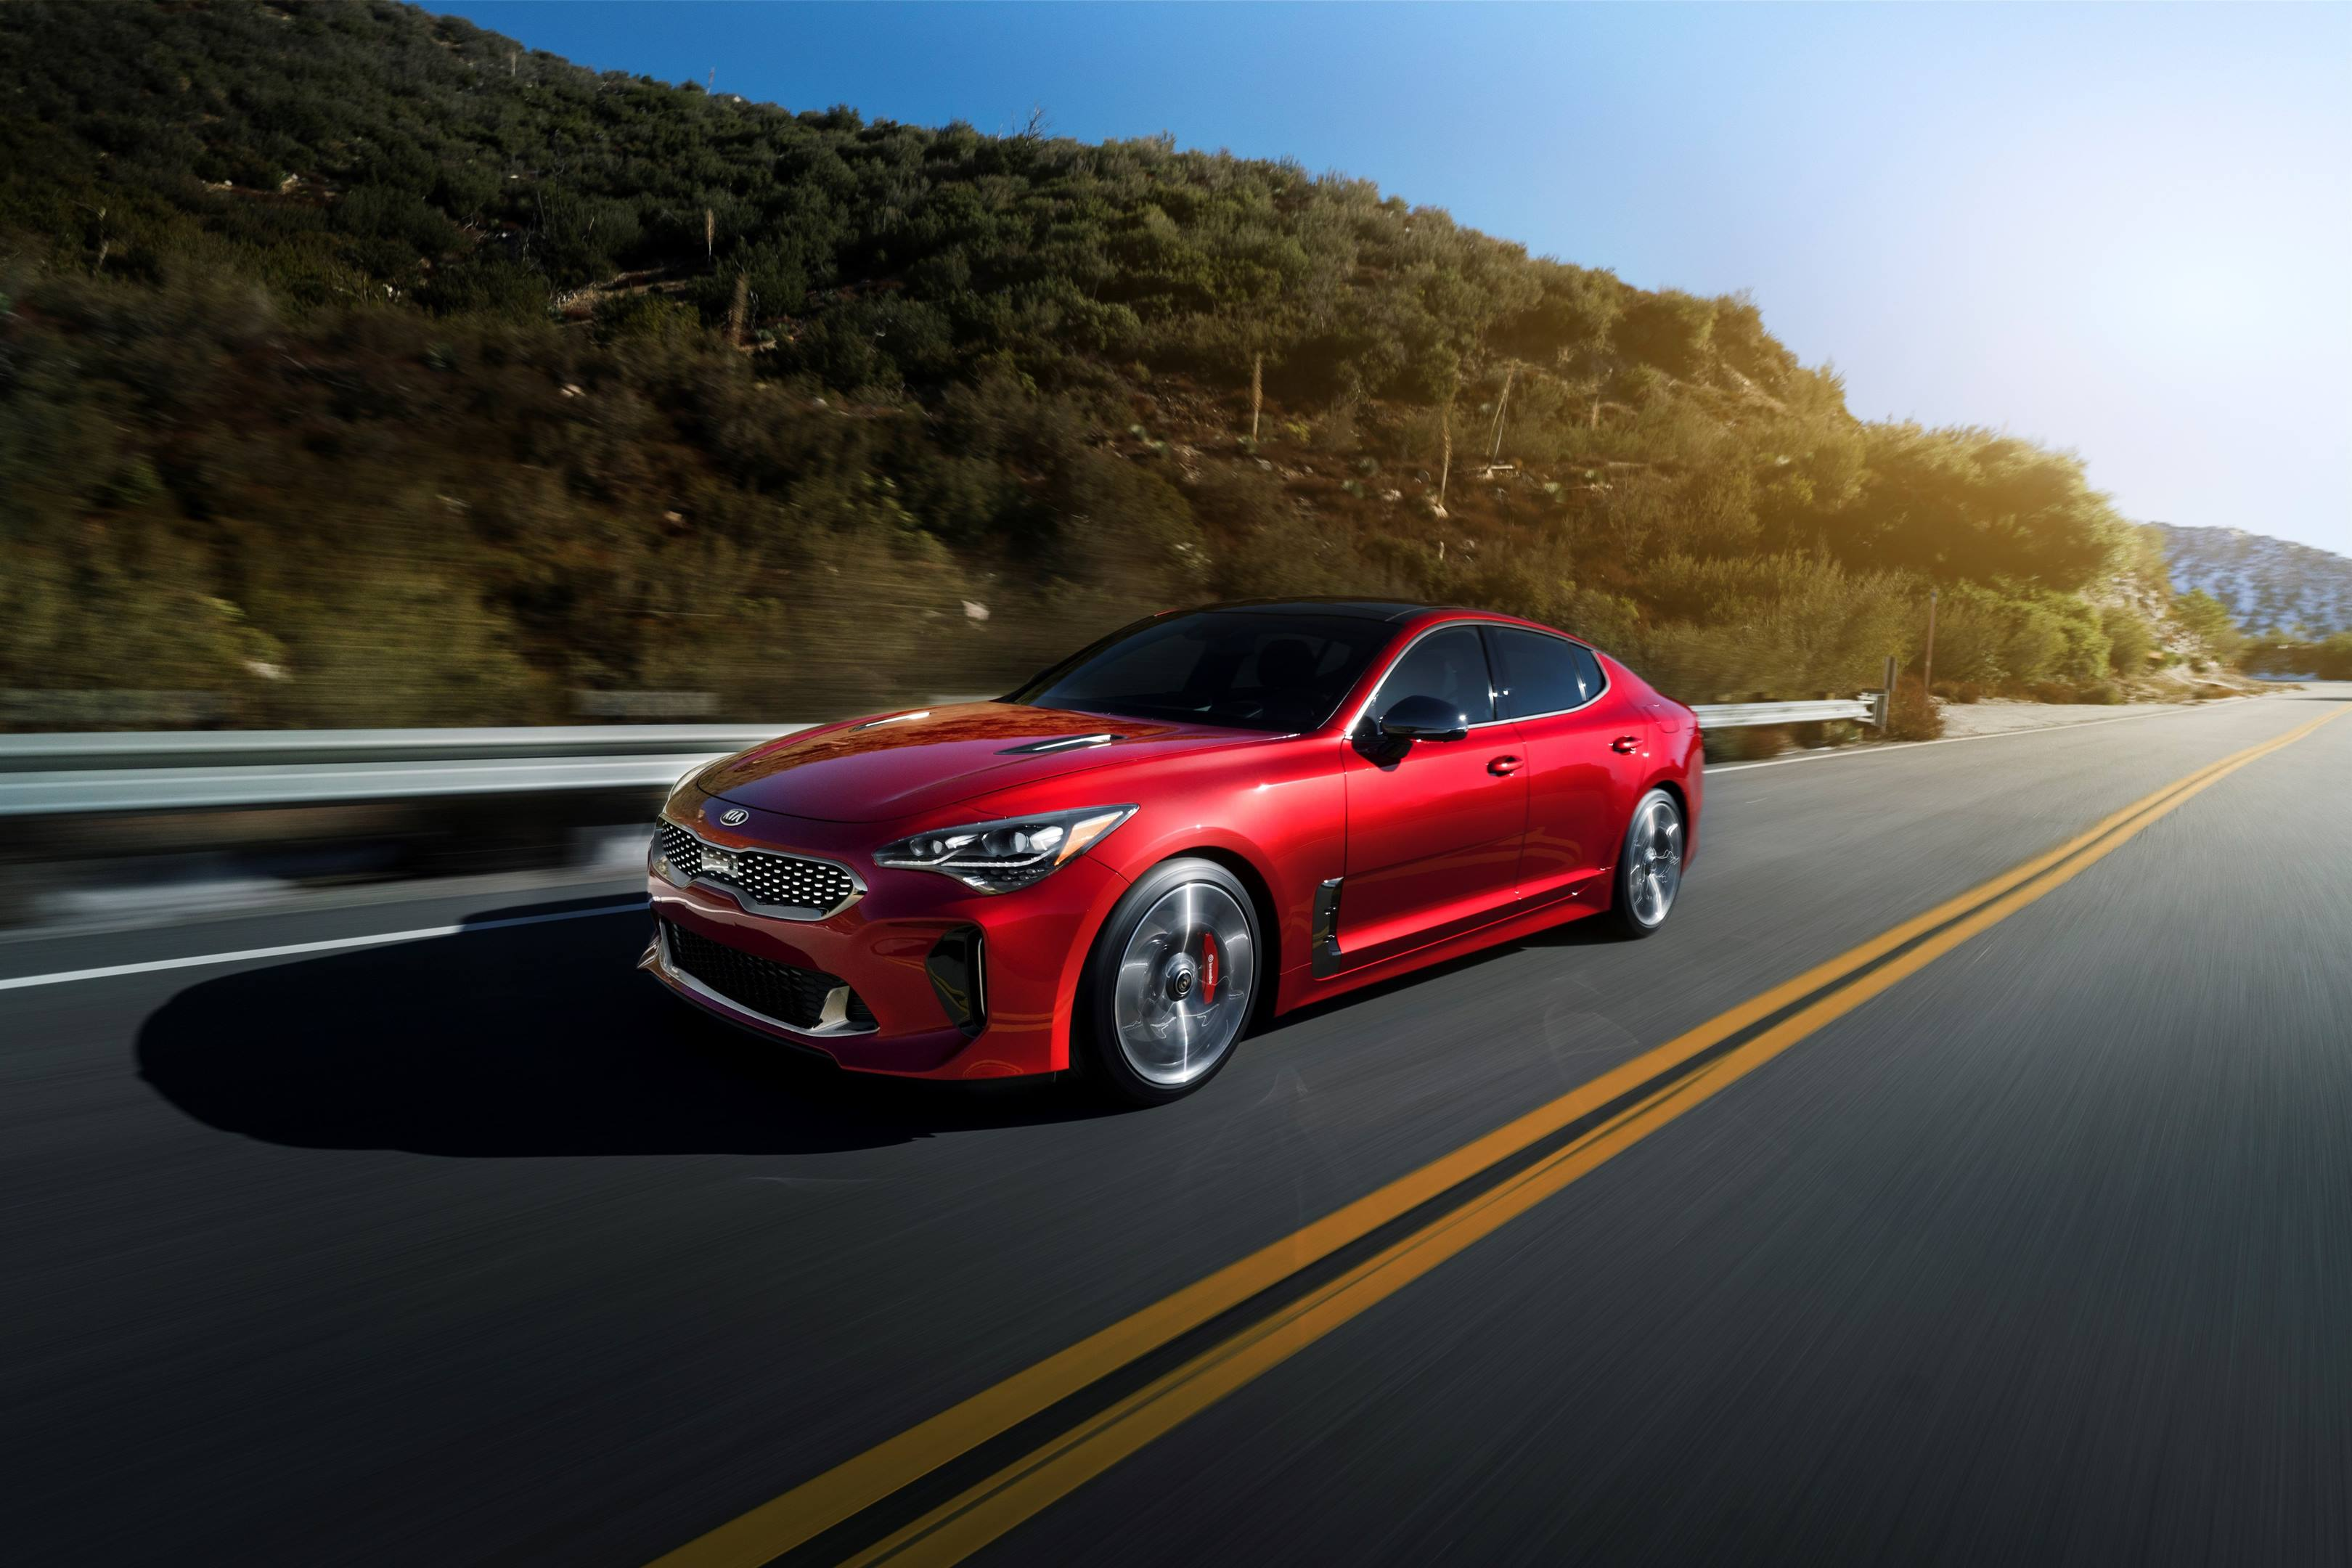 2018 Kia Stinger GT driving down the highway